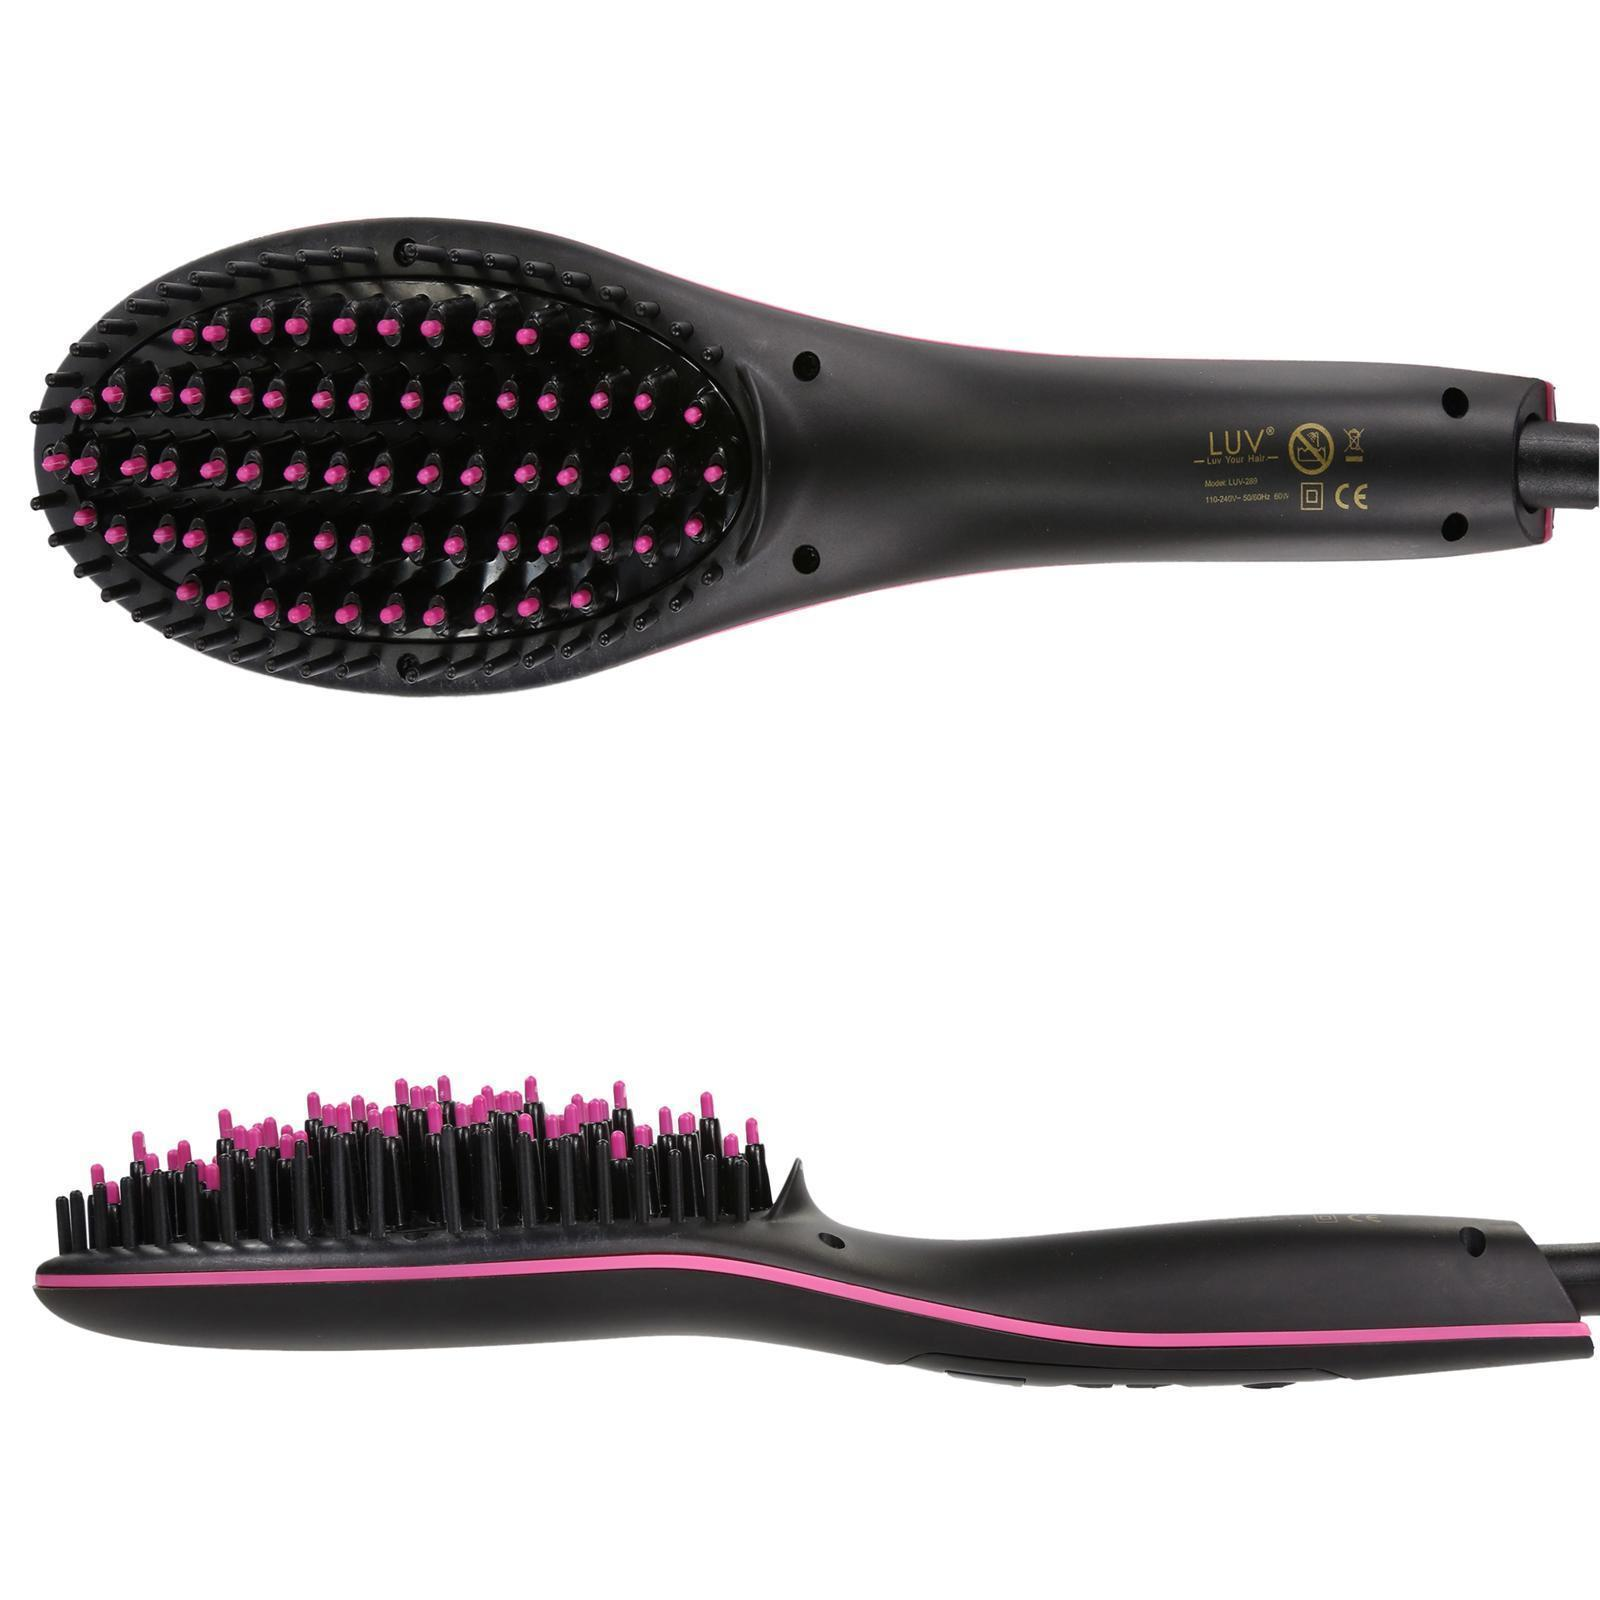 LUV-Hair-Straightening-Brush-Anti-Static-Technology-Anti-Scald-LCD-Display thumbnail 9